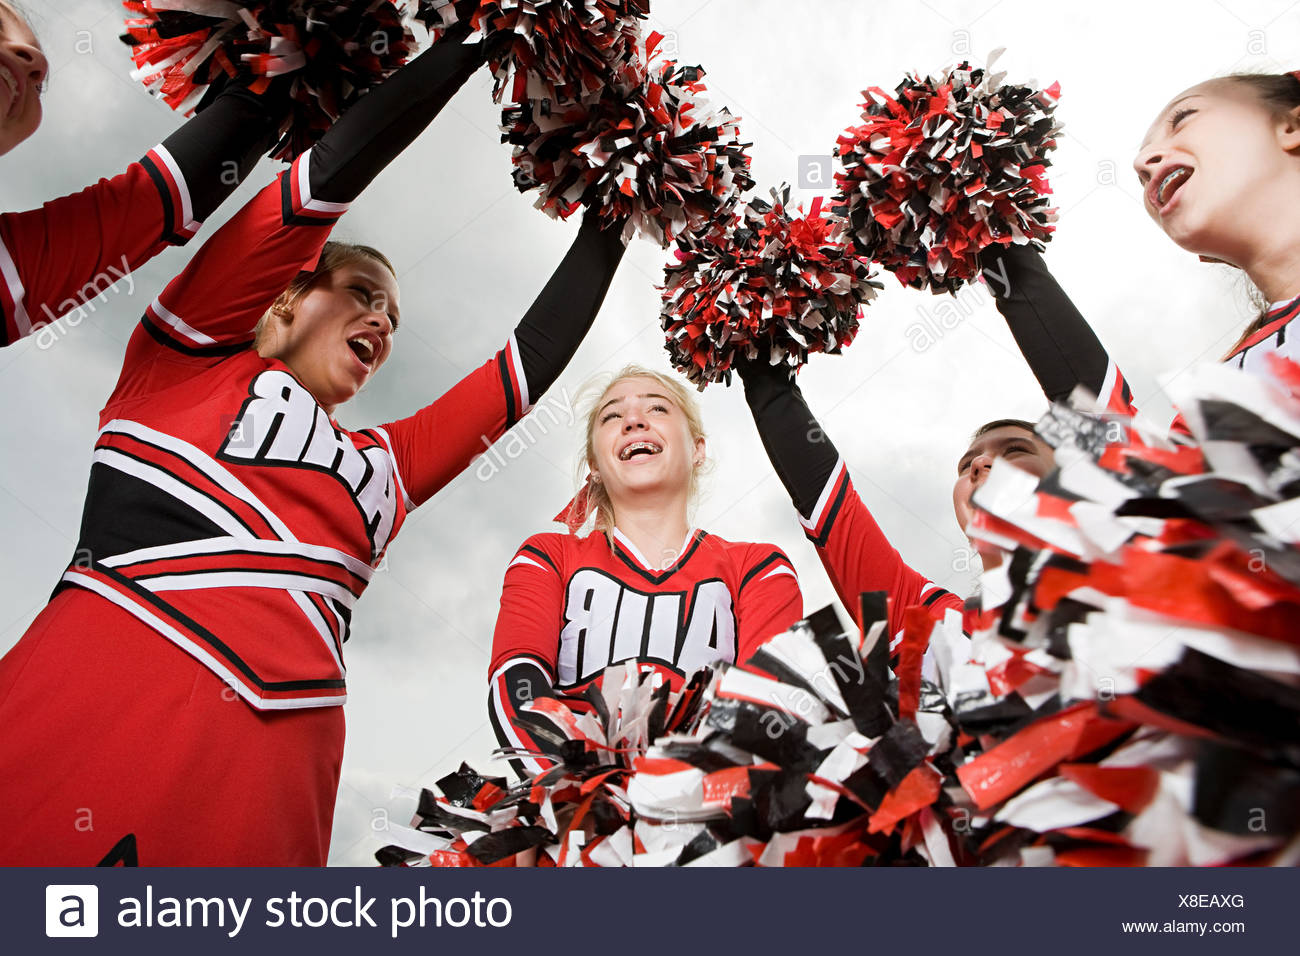 Cheerleaders with pom poms - Stock Image Cheerleader Pom Poms Photos \u0026